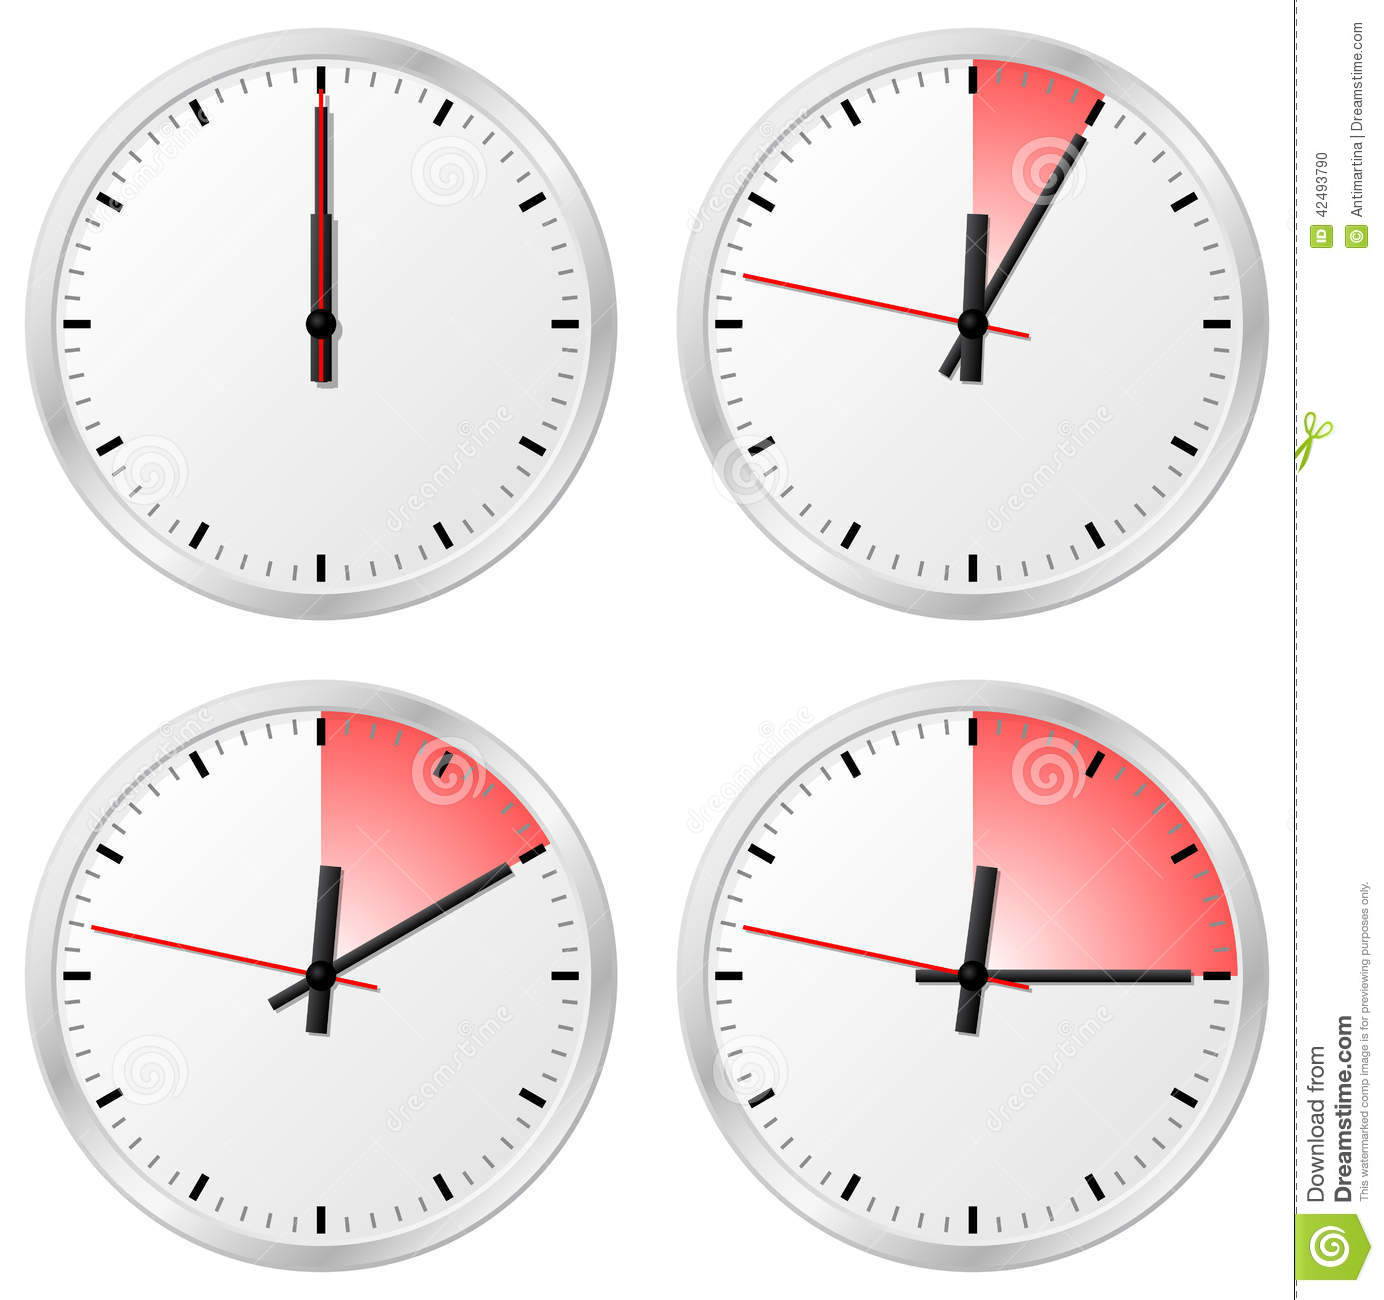 Timer With 0 5 10 And 15 Minutes Stock Vector